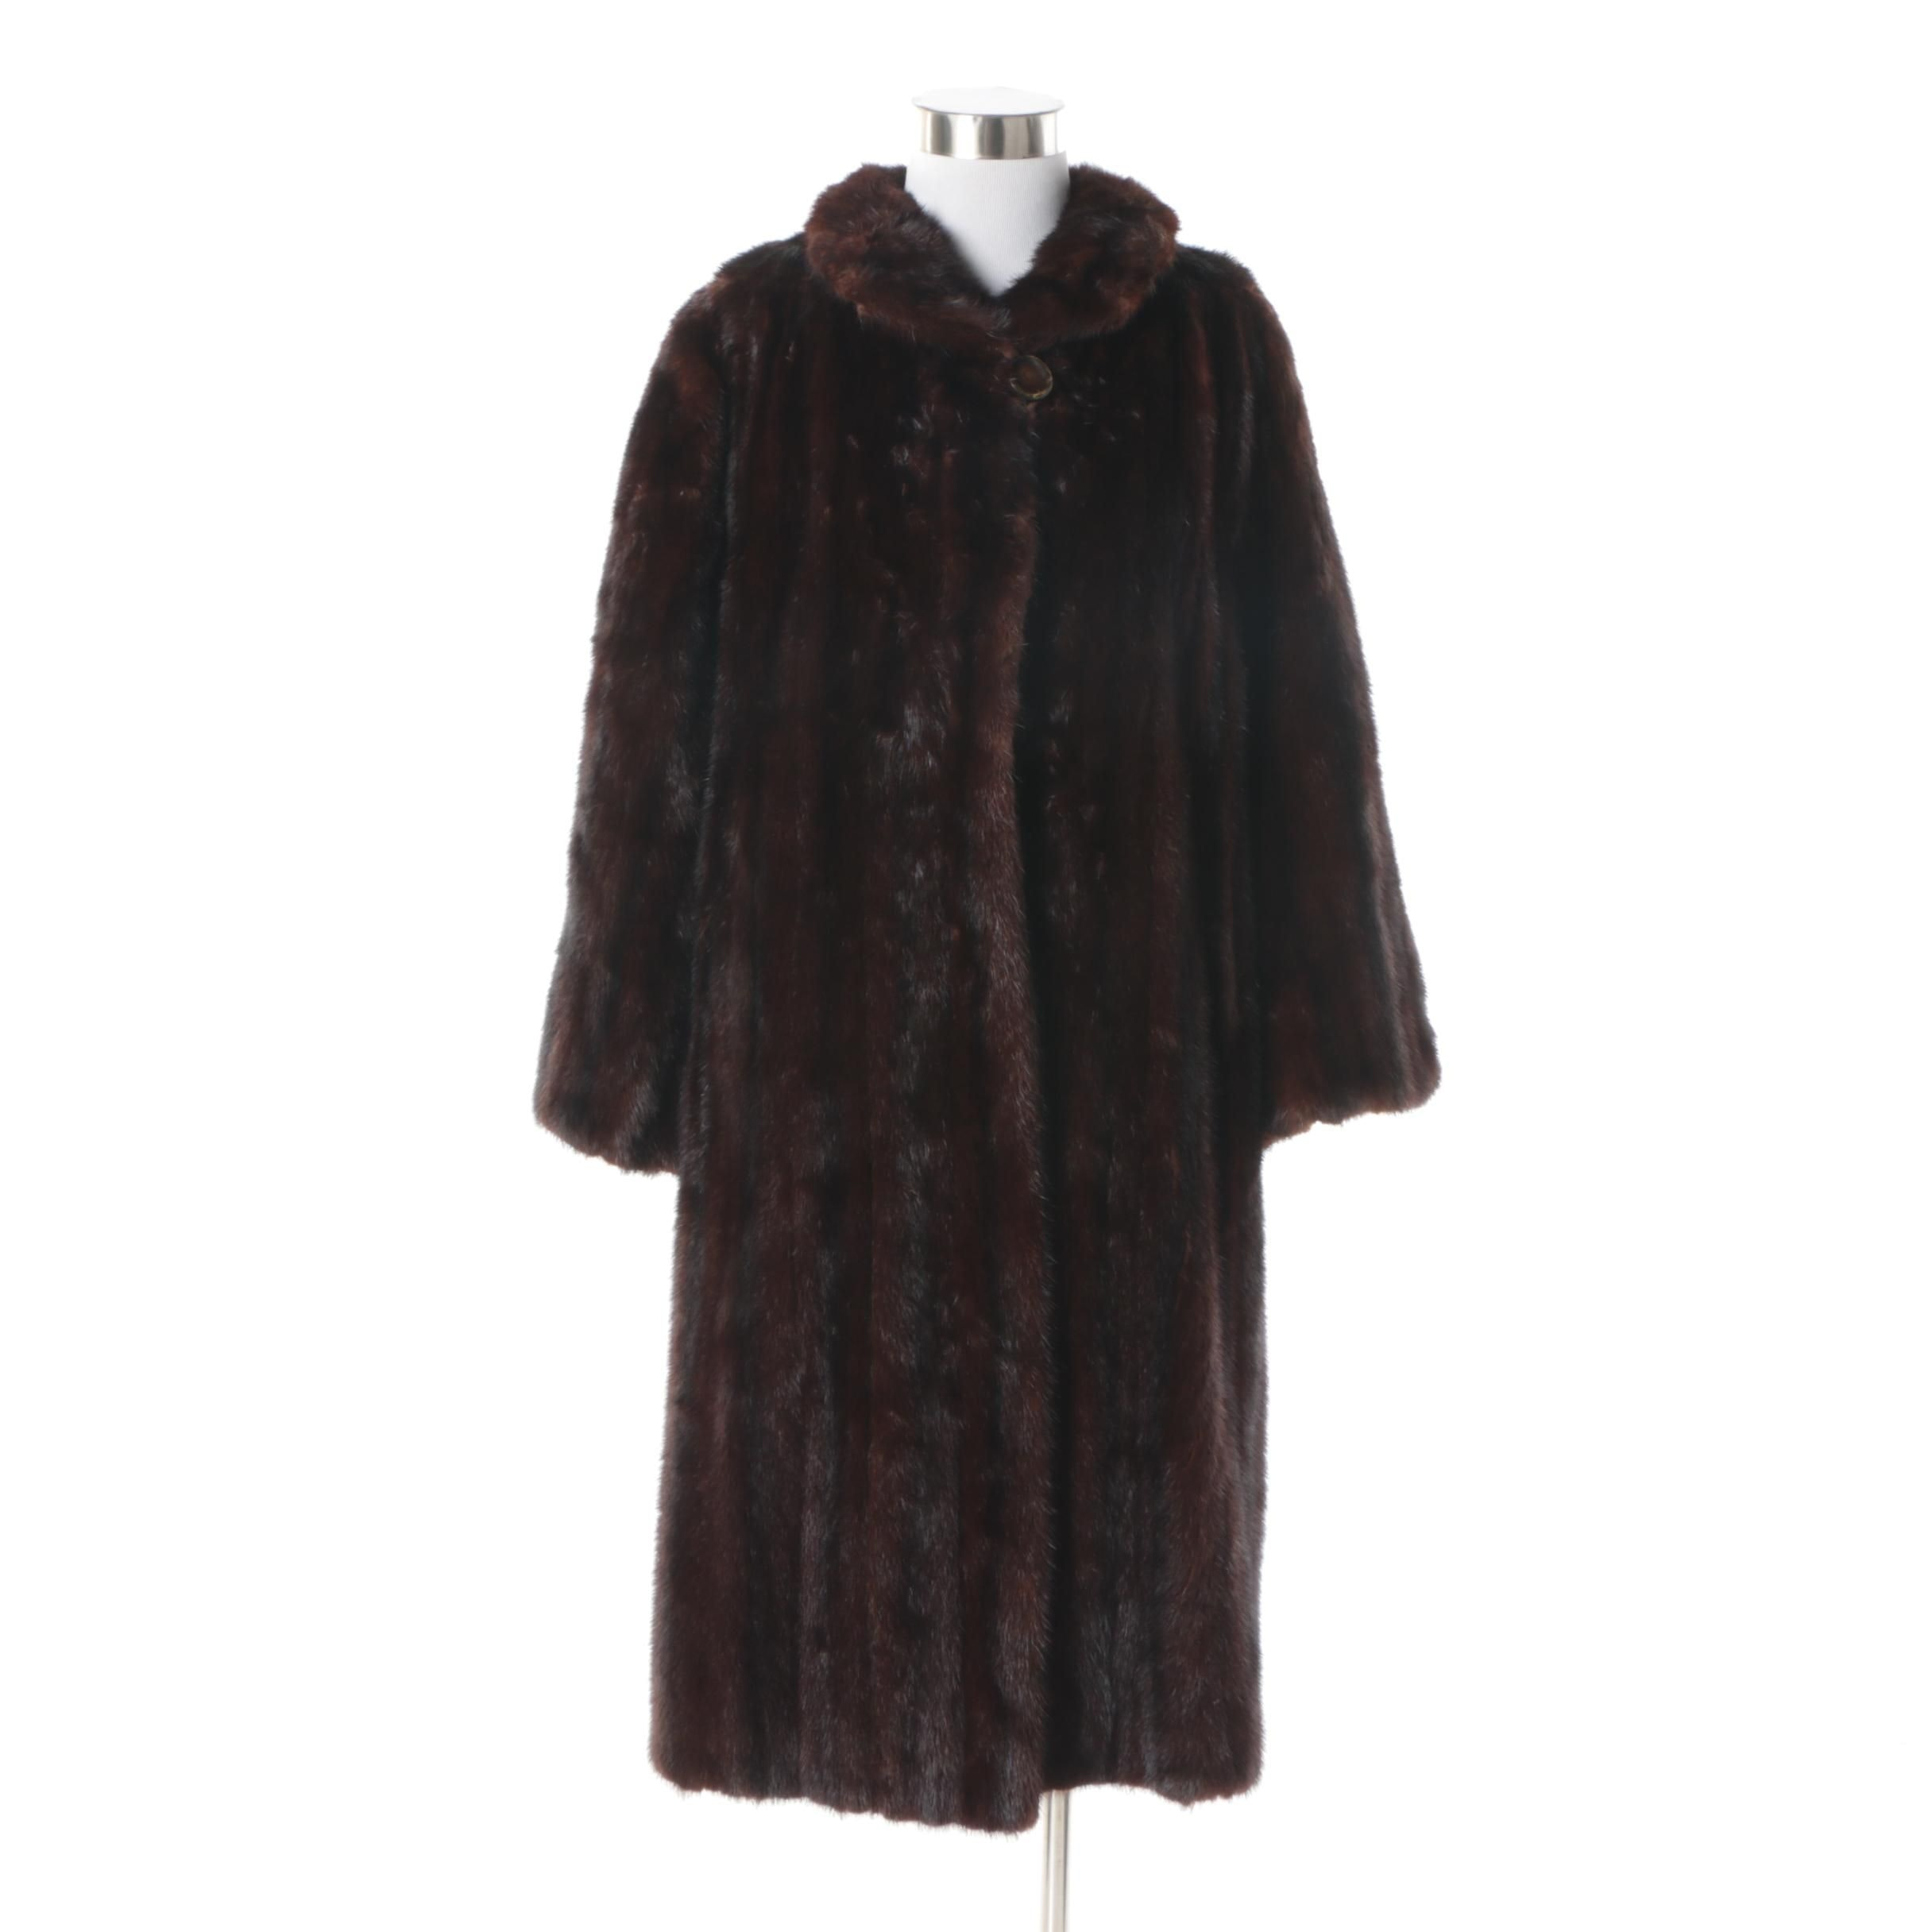 Women's Vintage Furs by Eleni Dark Mahogany Brown Mink Fur Coat